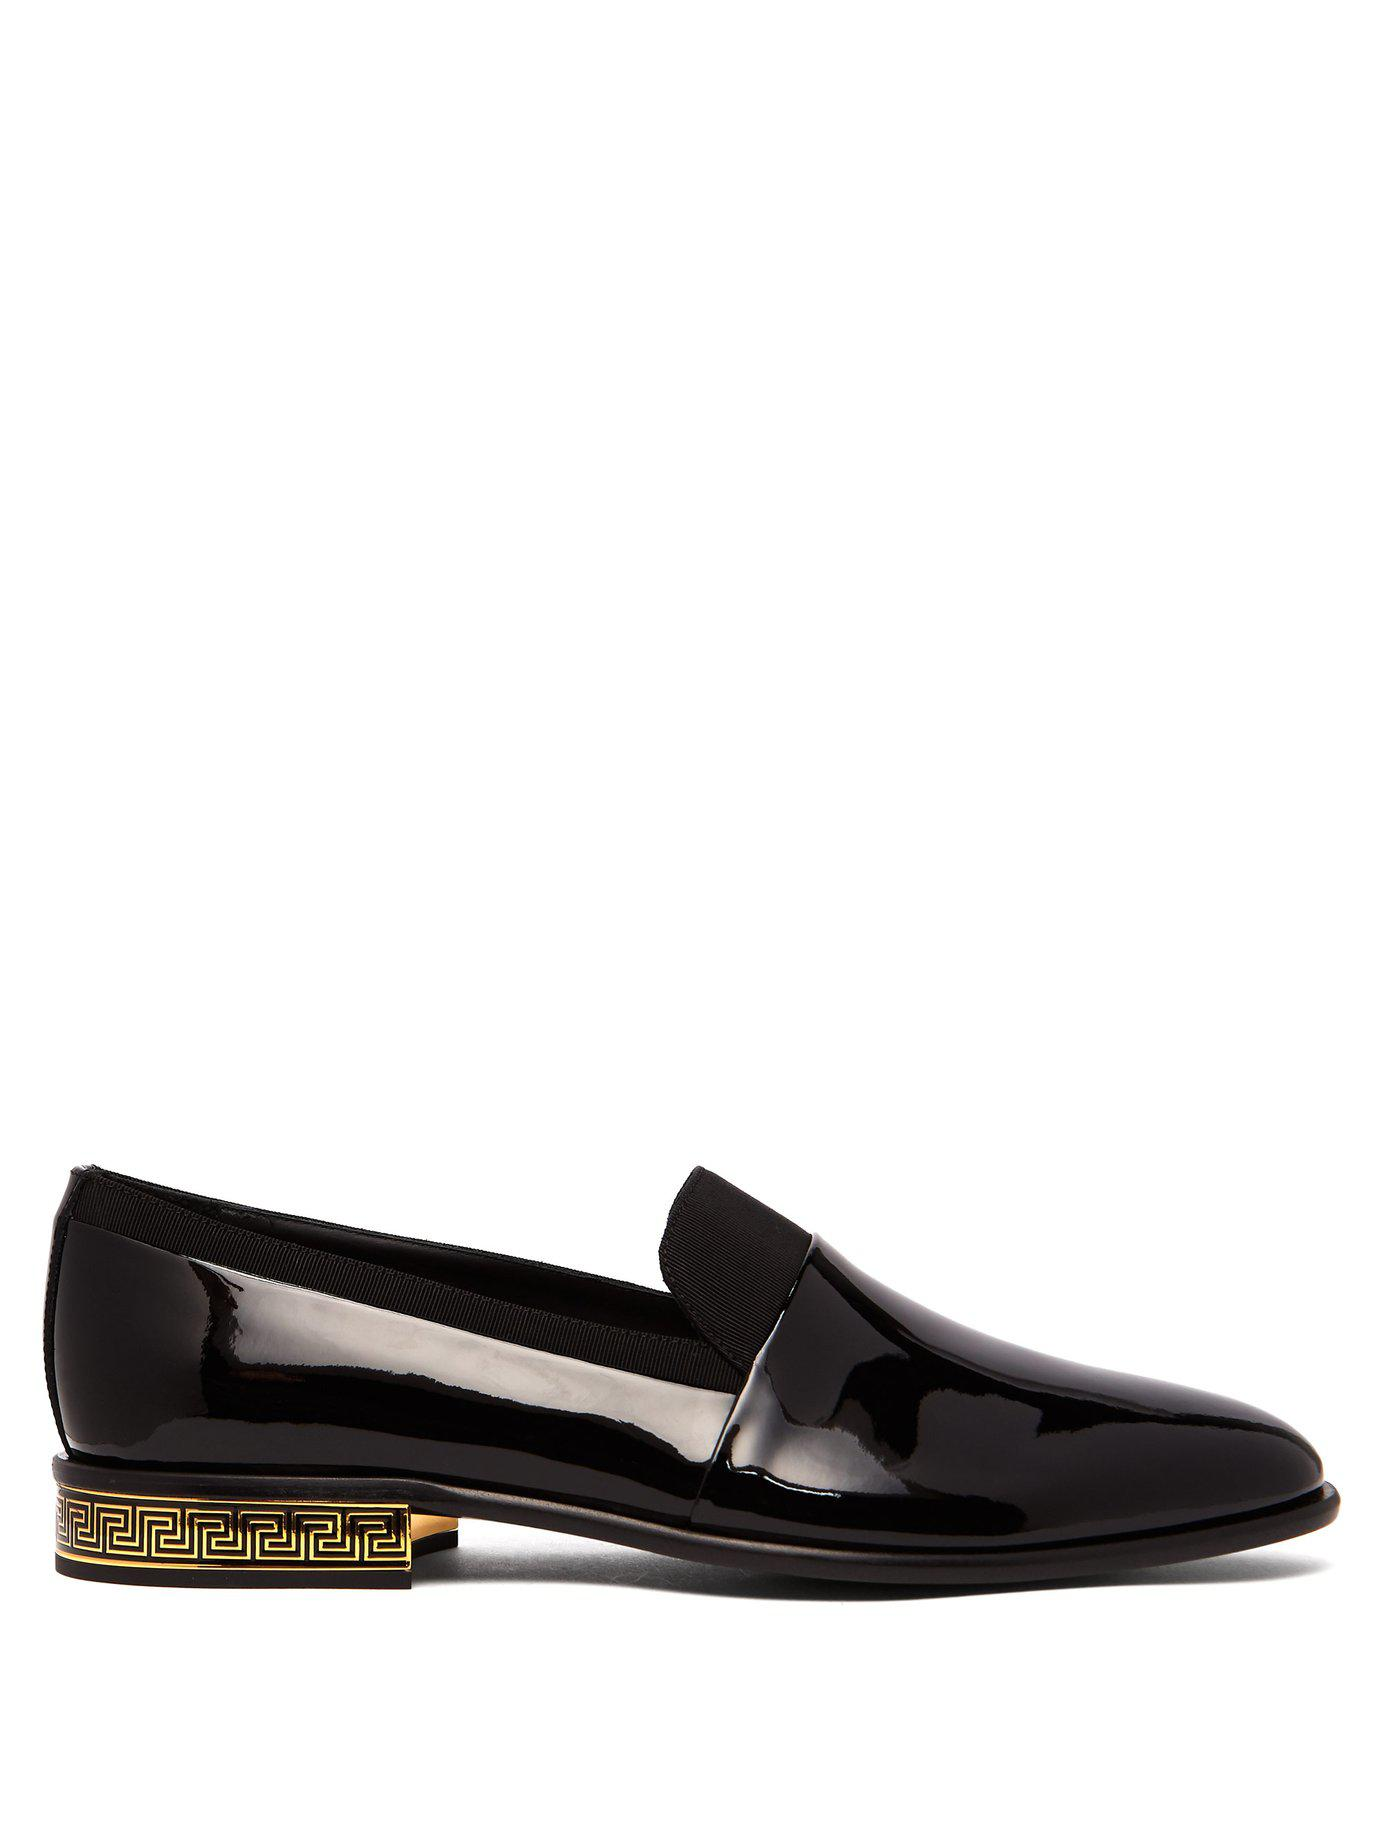 04e673c4405 Lyst - Versace Patent Leather Loafers in Black for Men